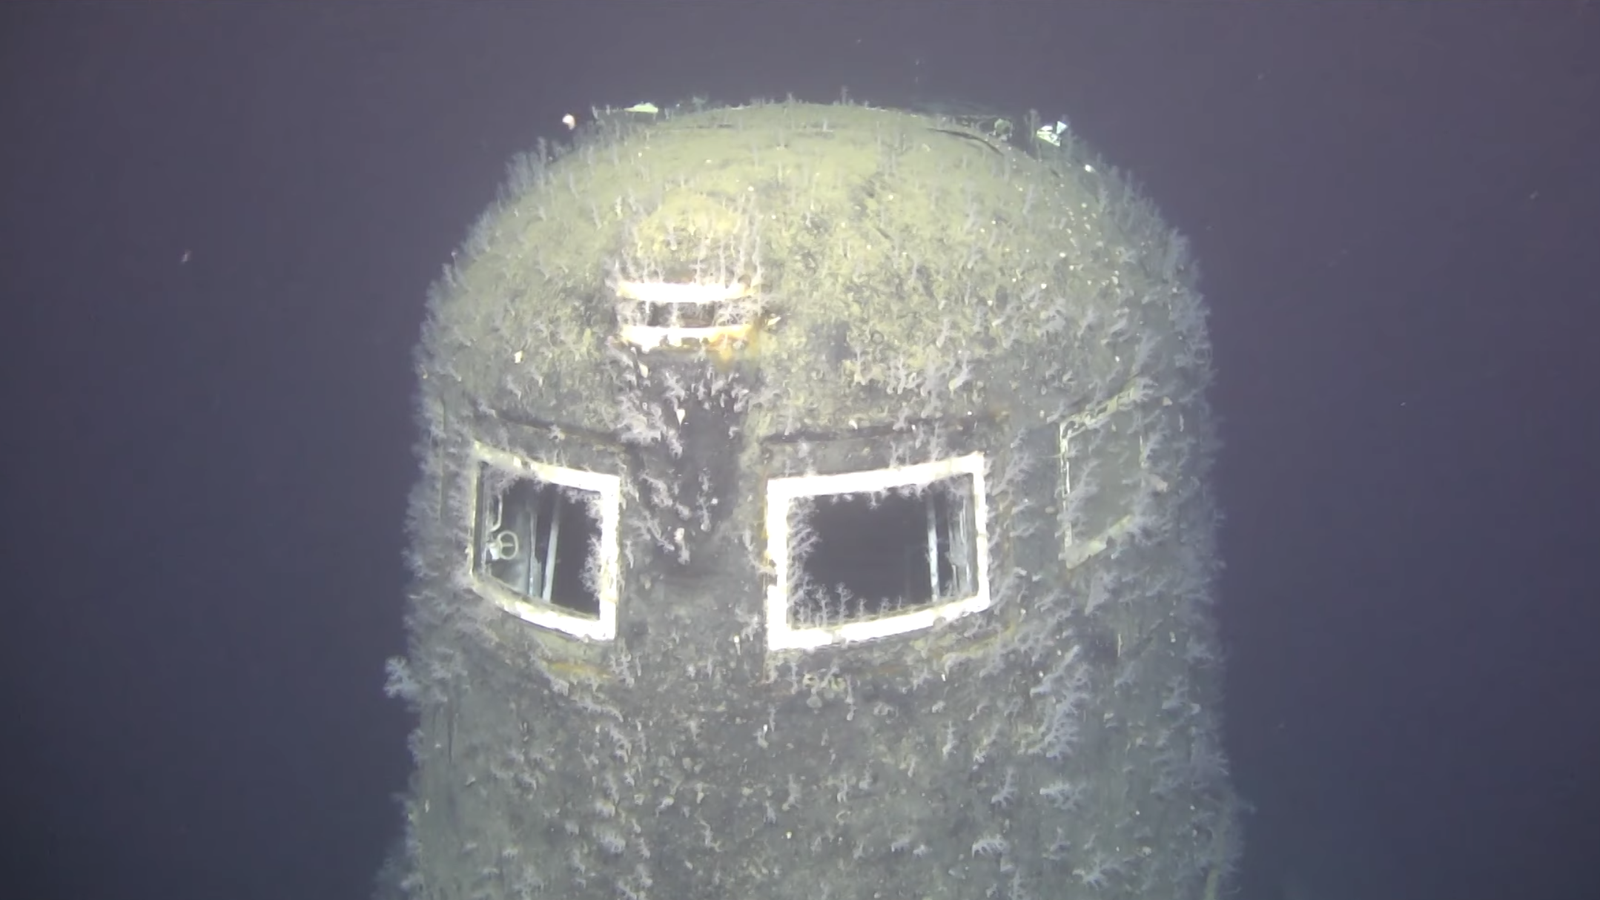 A Sunken Cold War Nuclear Sub Is Leaking Radiation at Levels 800,000 Times Normal